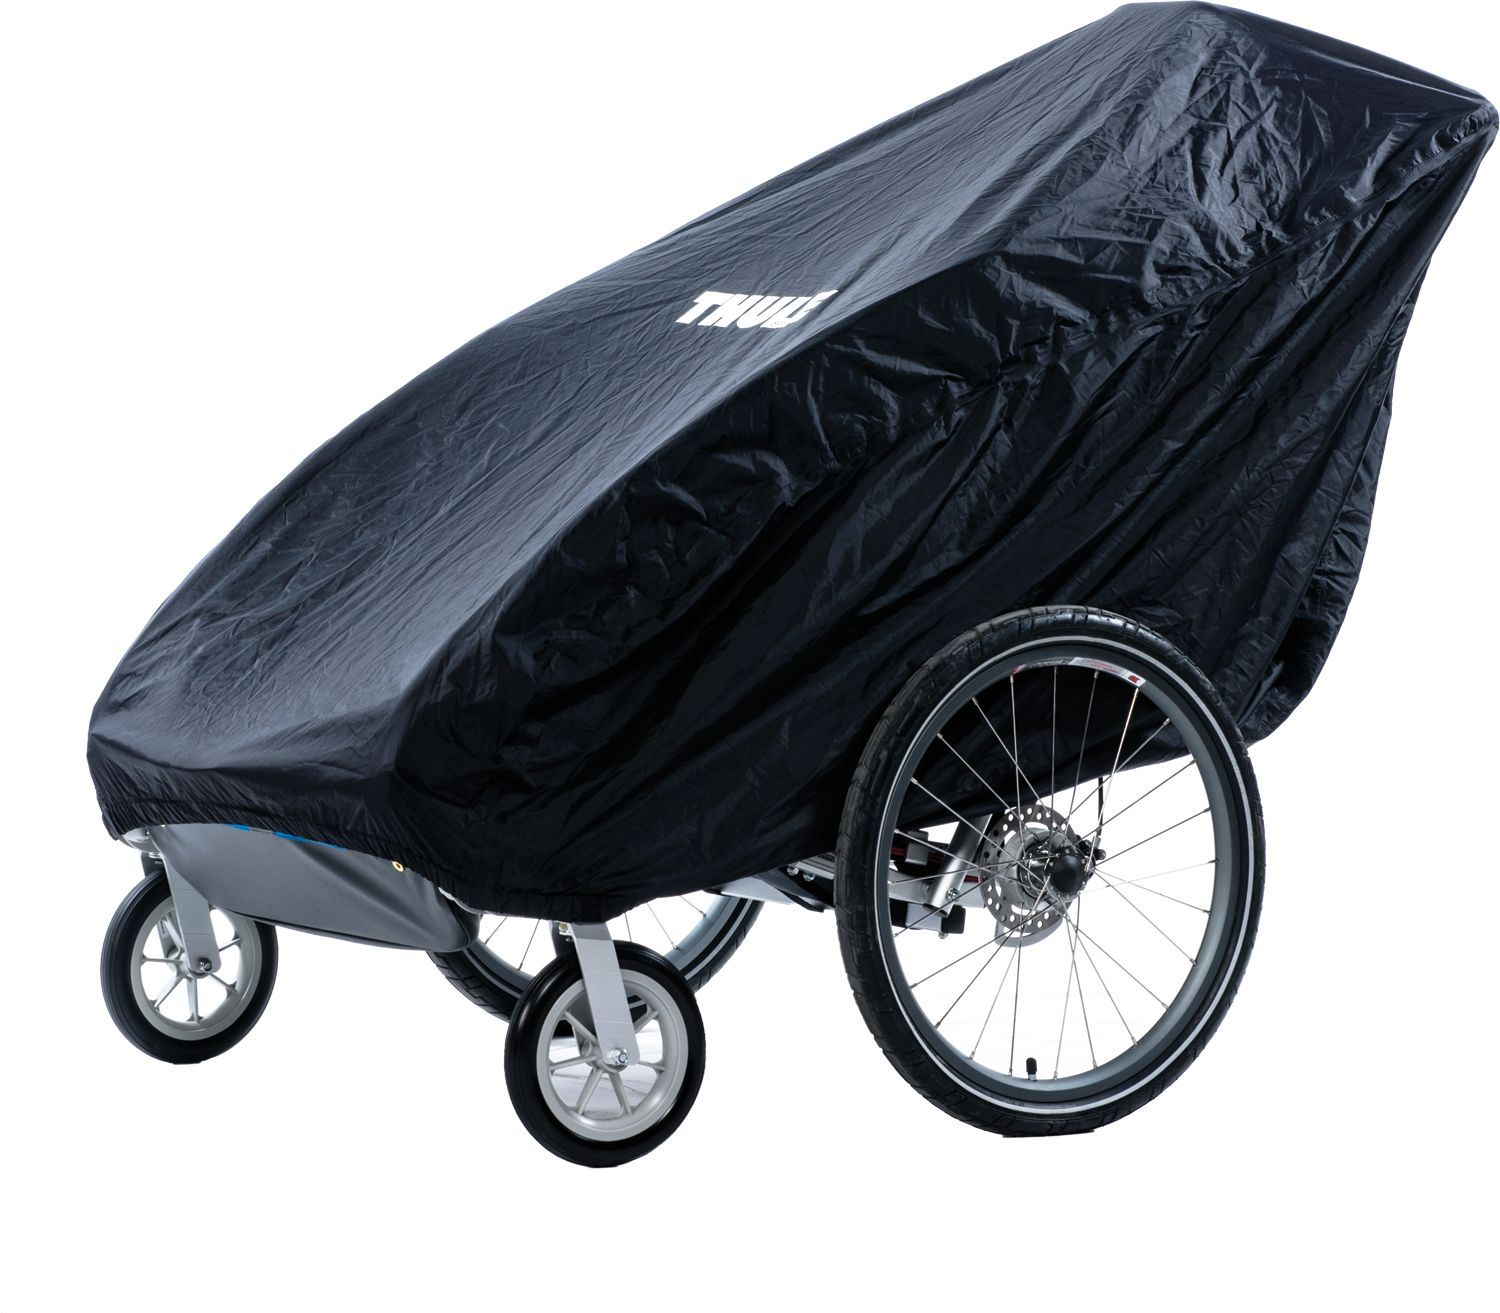 Thule Stroller Storage Cover Stroller storage, Double